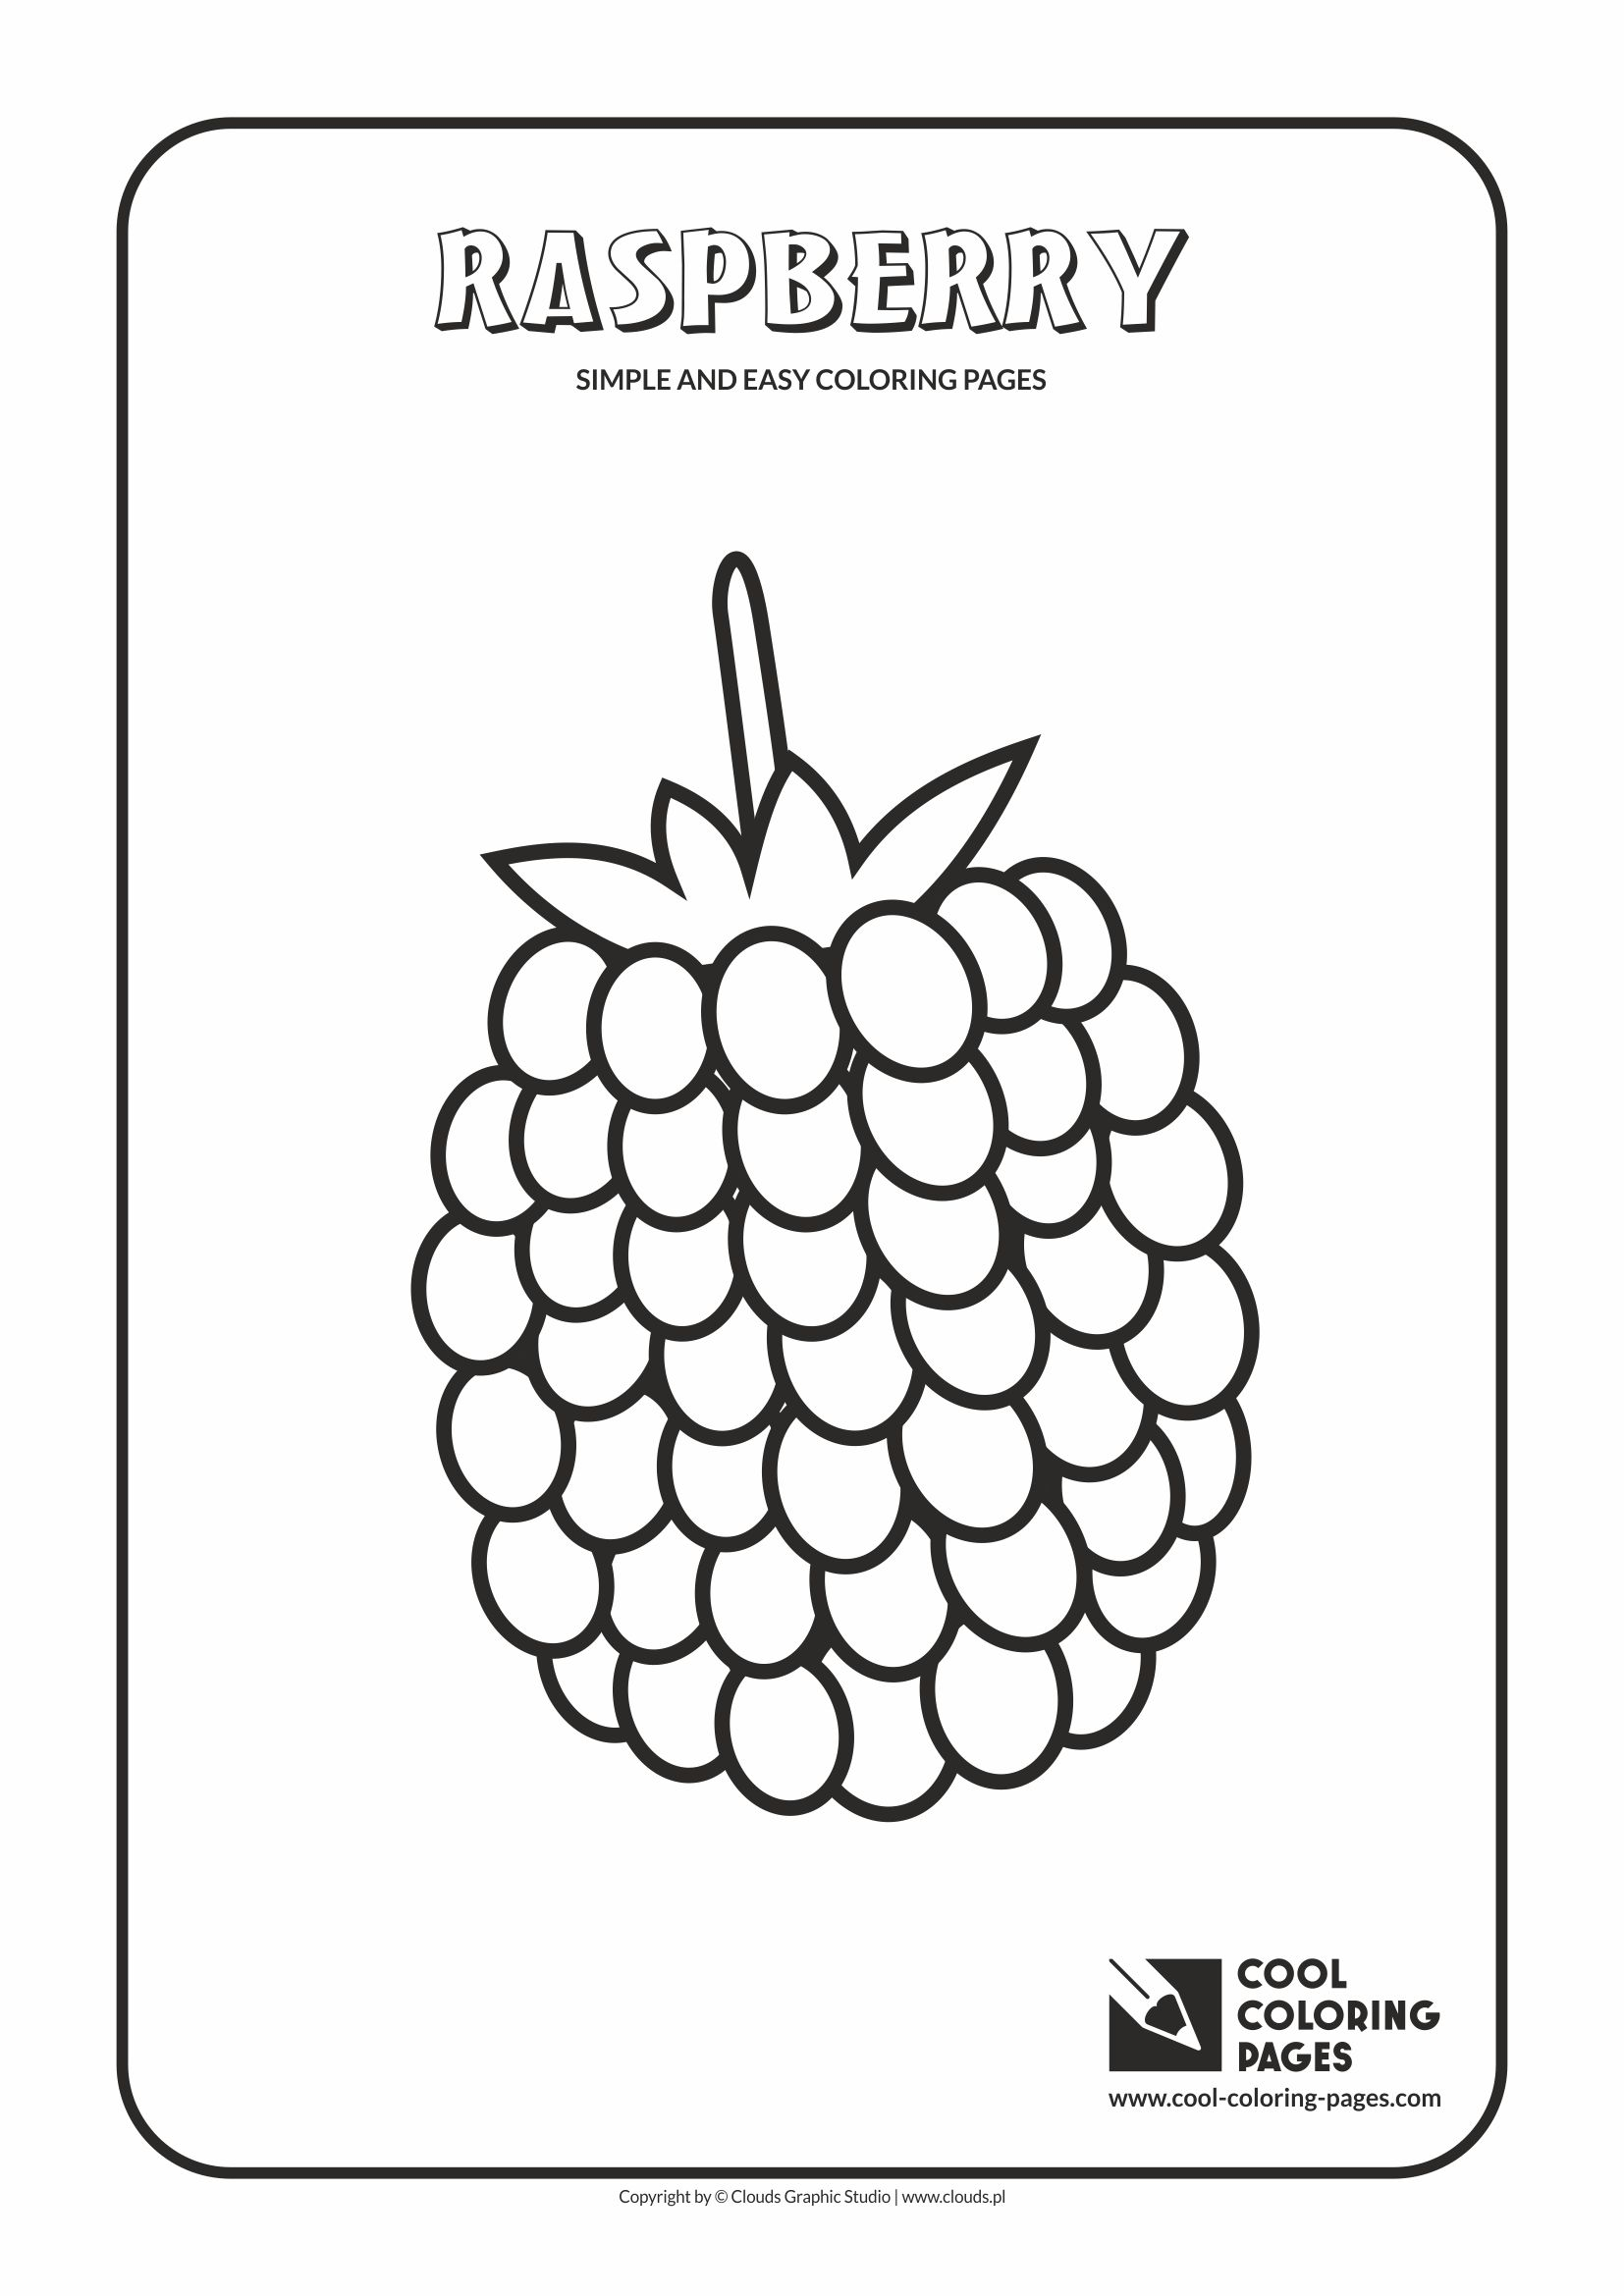 Simple and easy coloring pages for toddlers - Raspberry